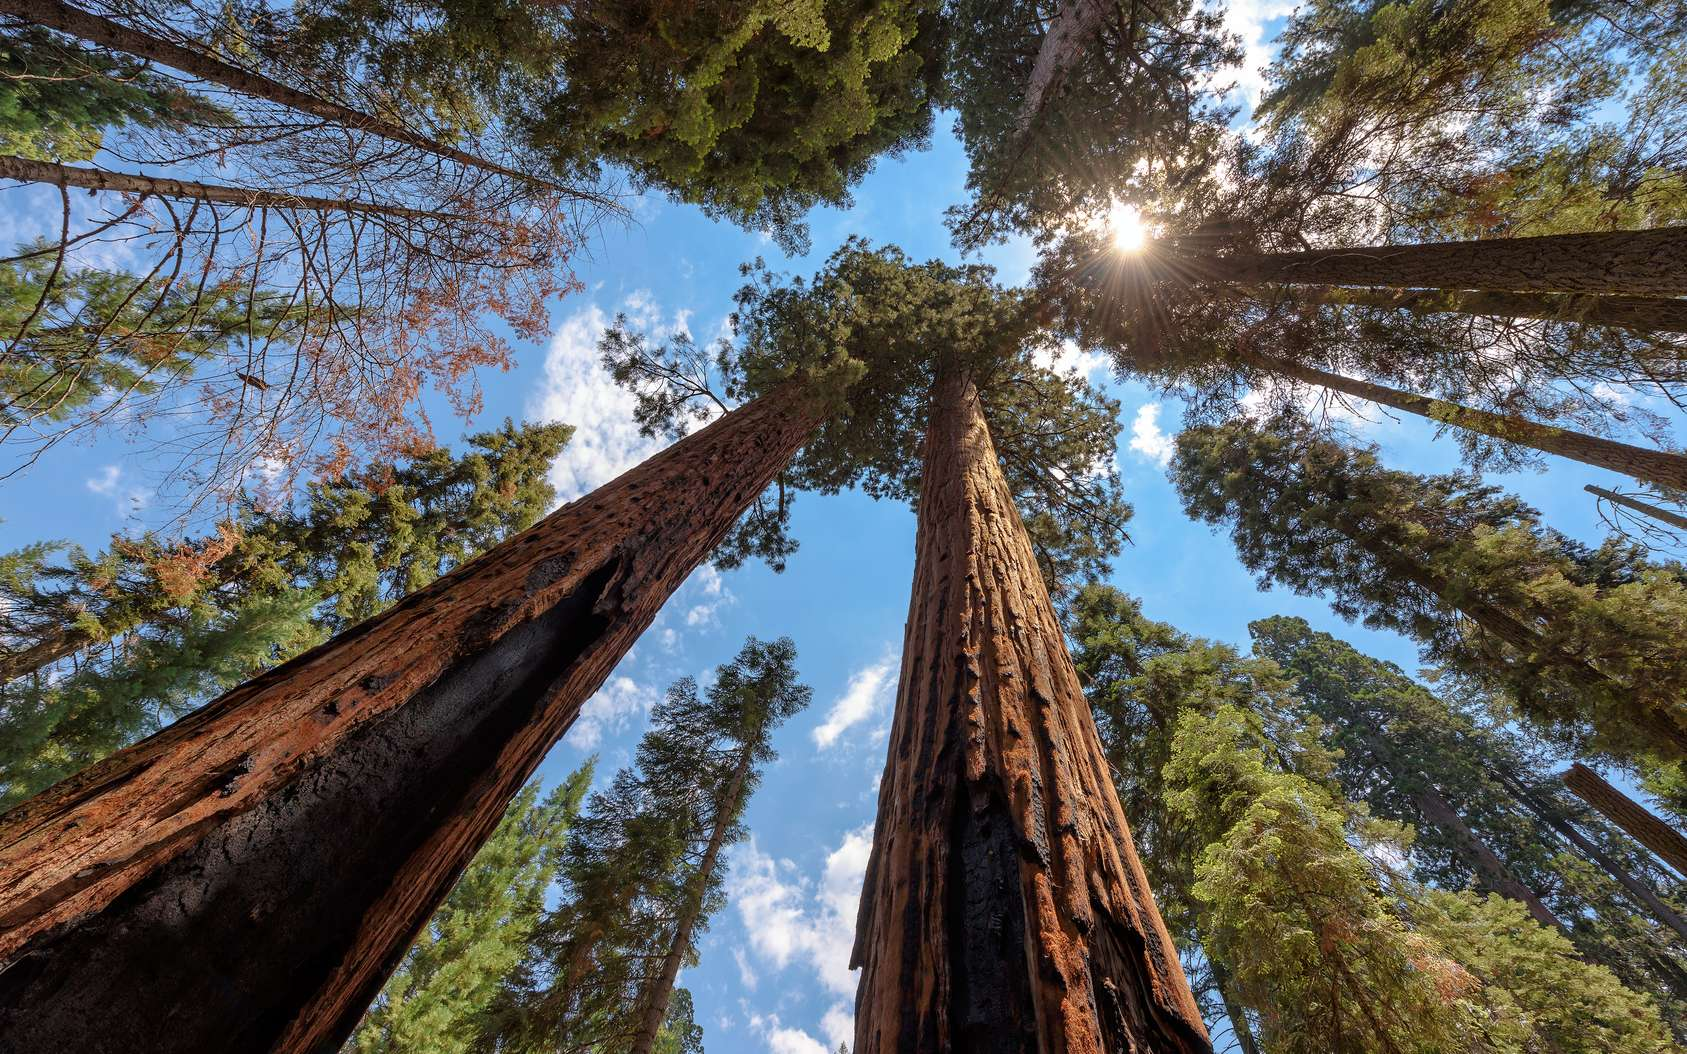 Séquoias géants (Sequoia sempervirens) dans le Sequoia National Park. © lucky-photo, fotolia